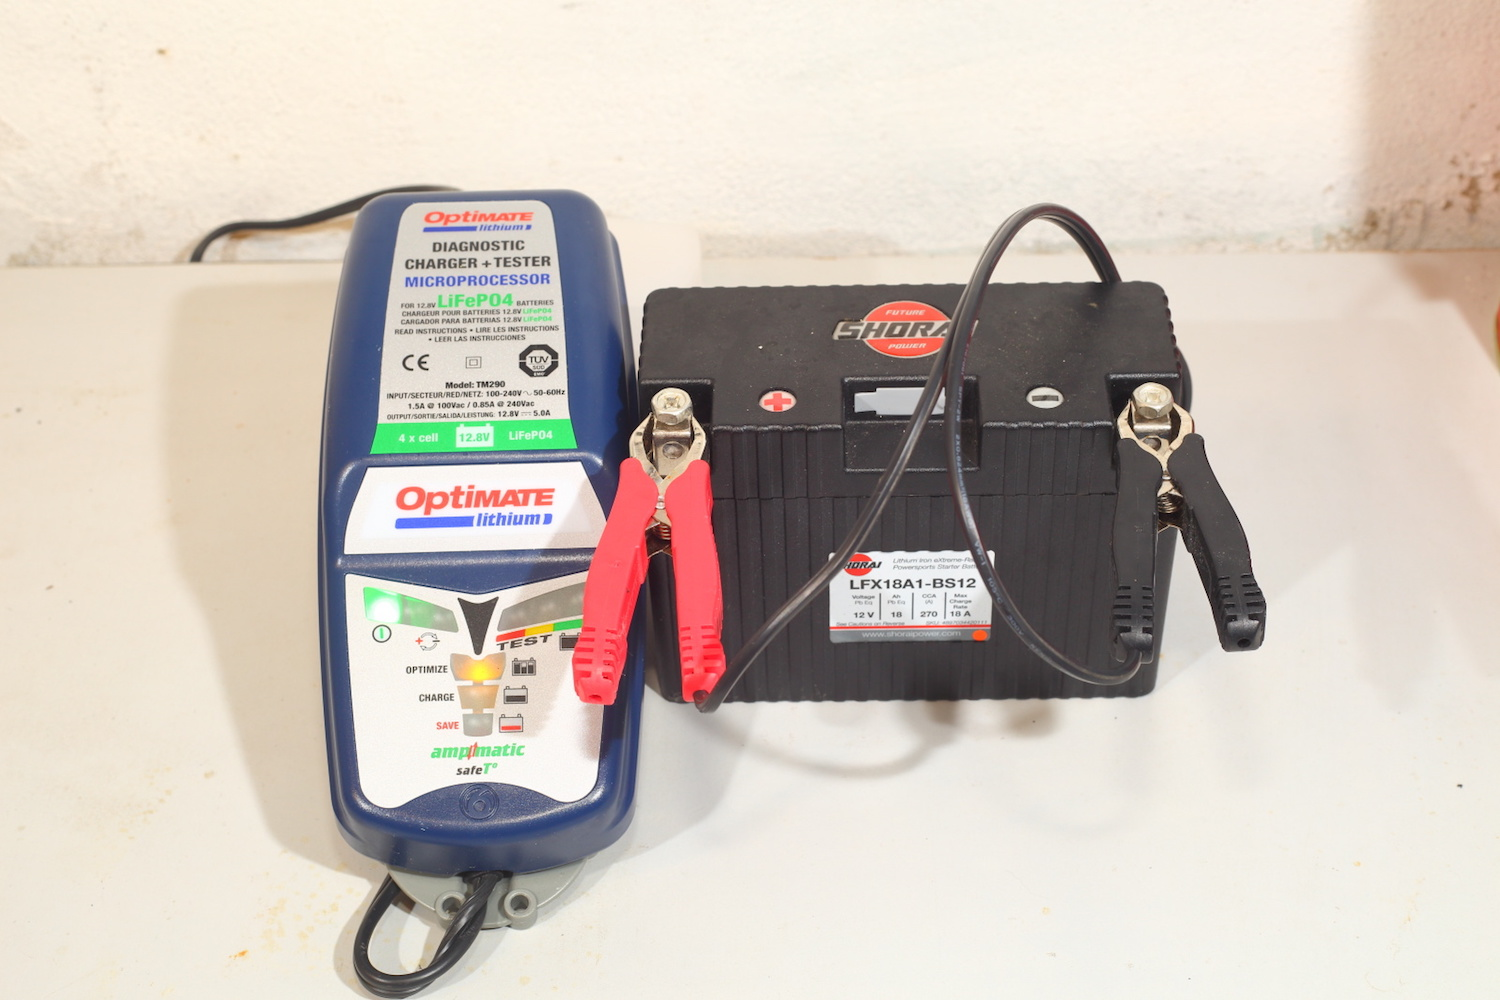 Optimate lithium charger